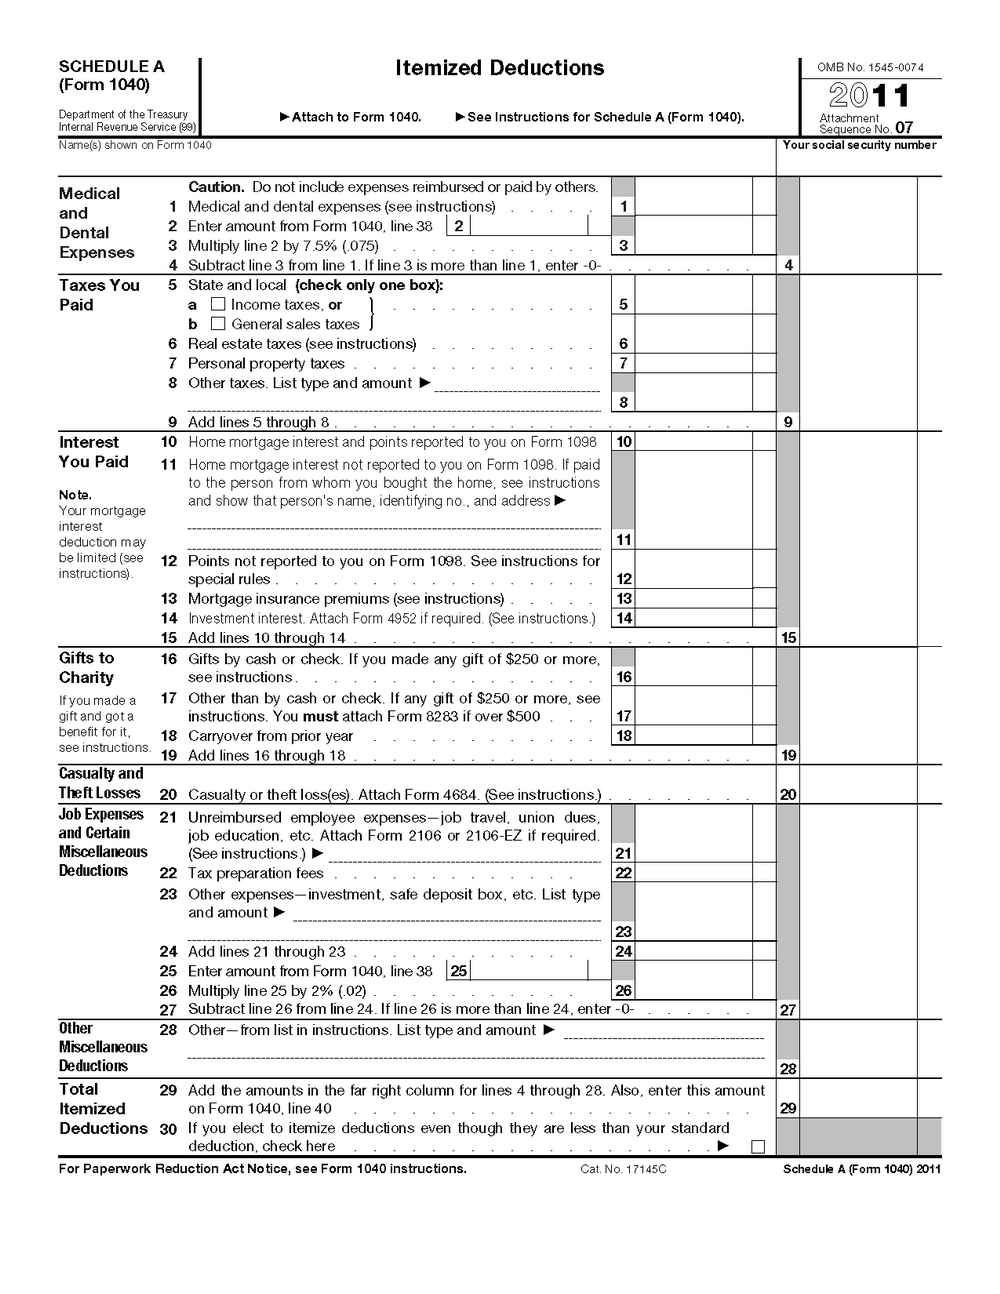 Irs Forms 1040ez 2011